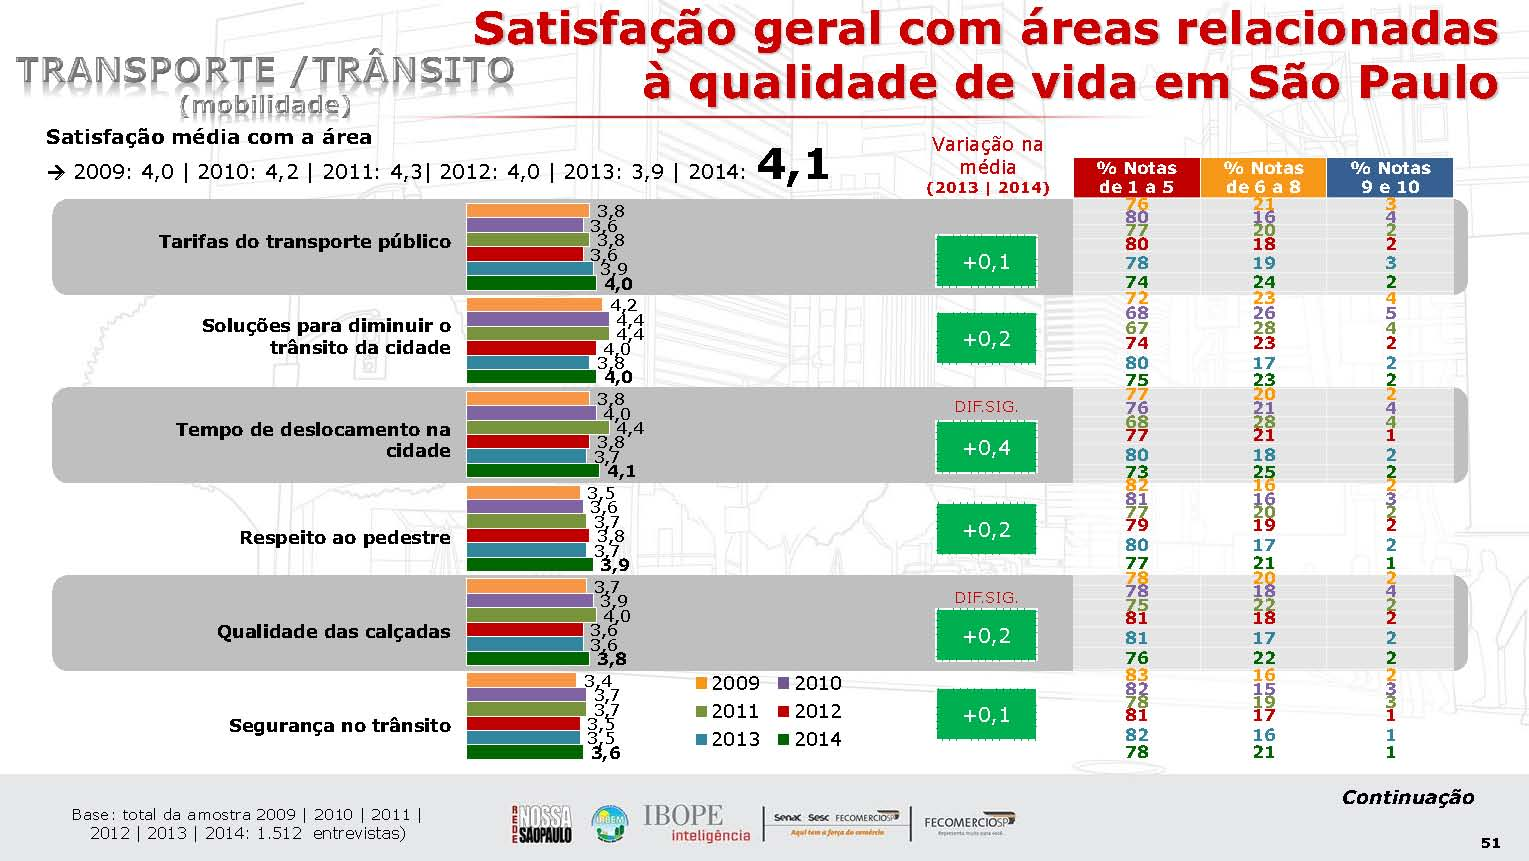 Increased or stable satisfaction with quality of transport in São Paulo